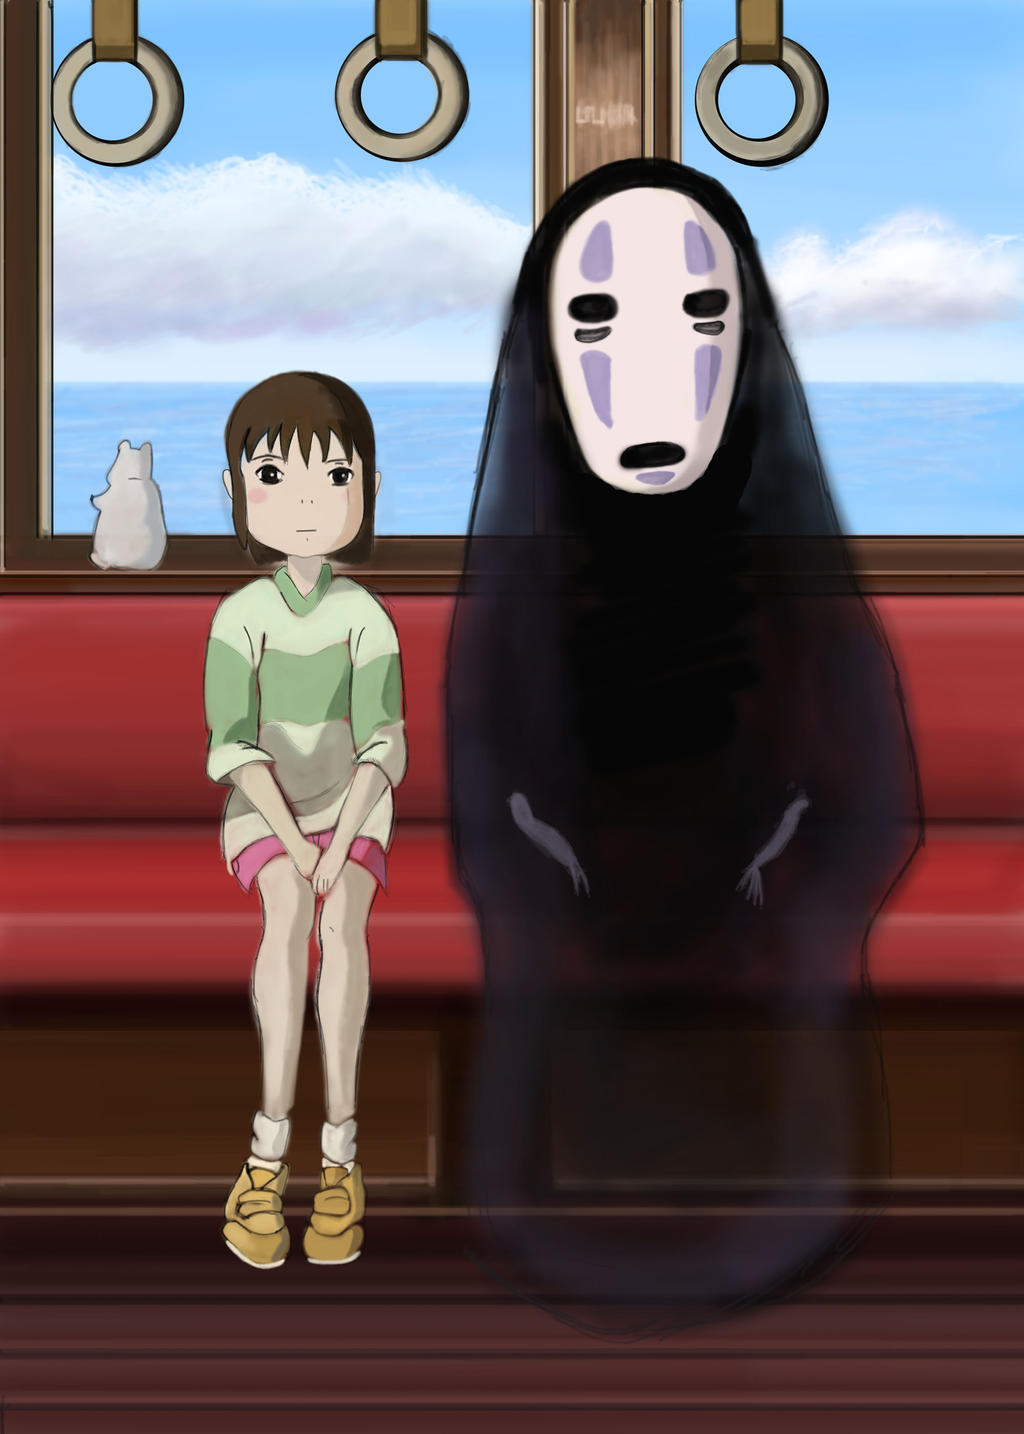 spirited away essay questions Looking for a free sample of essays let us find the best one for you what is your topic  it can be quite challenging for me to complete an essay,.